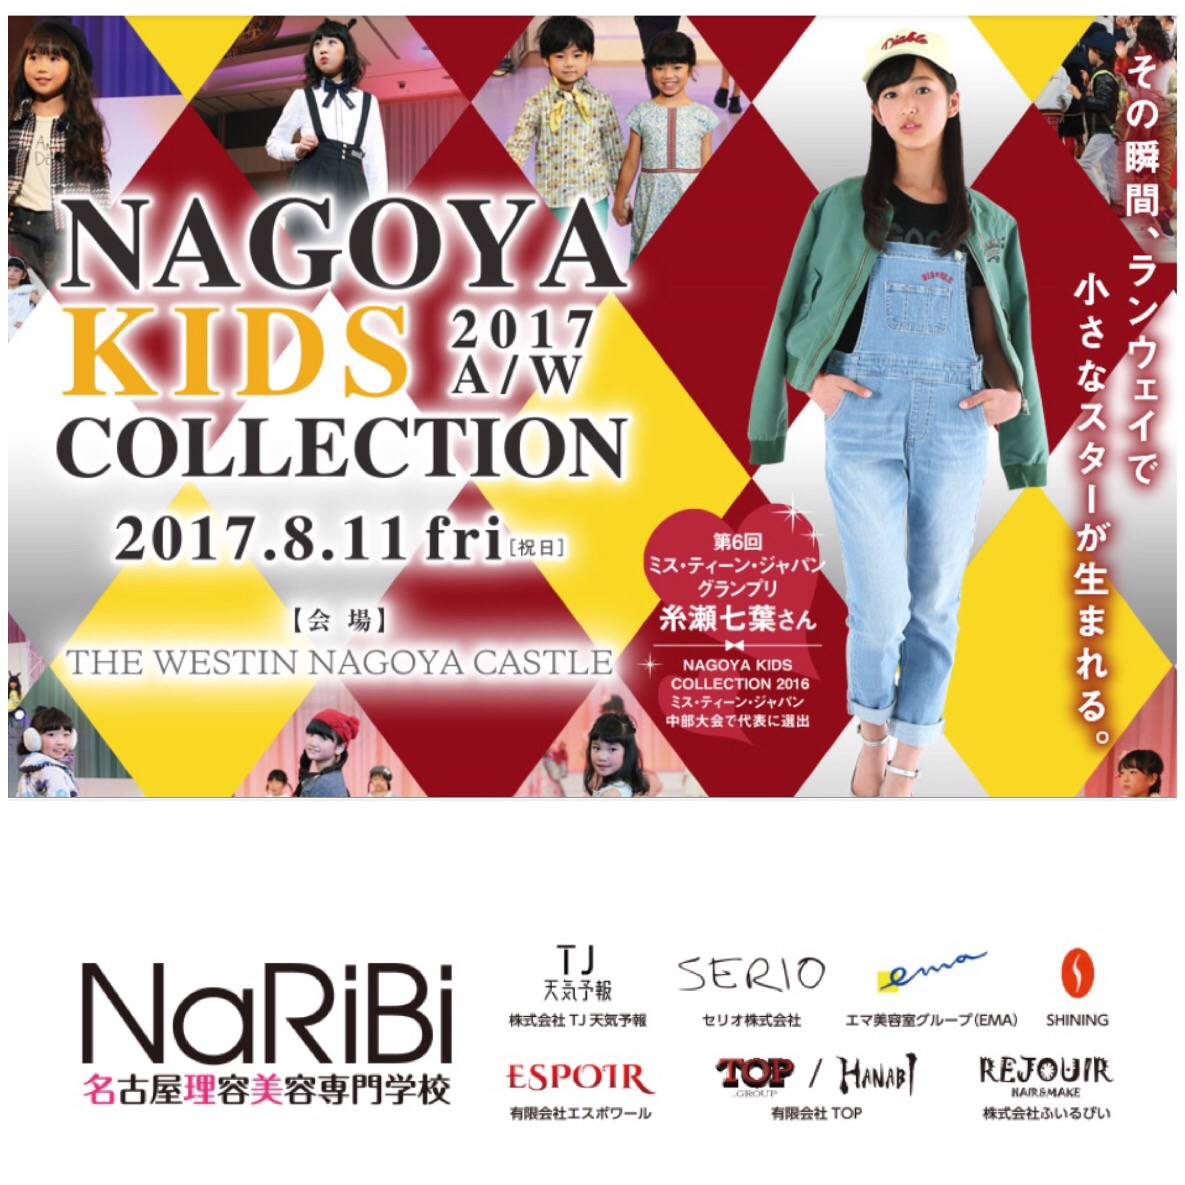 NAGOYA KIDS COLLECTION